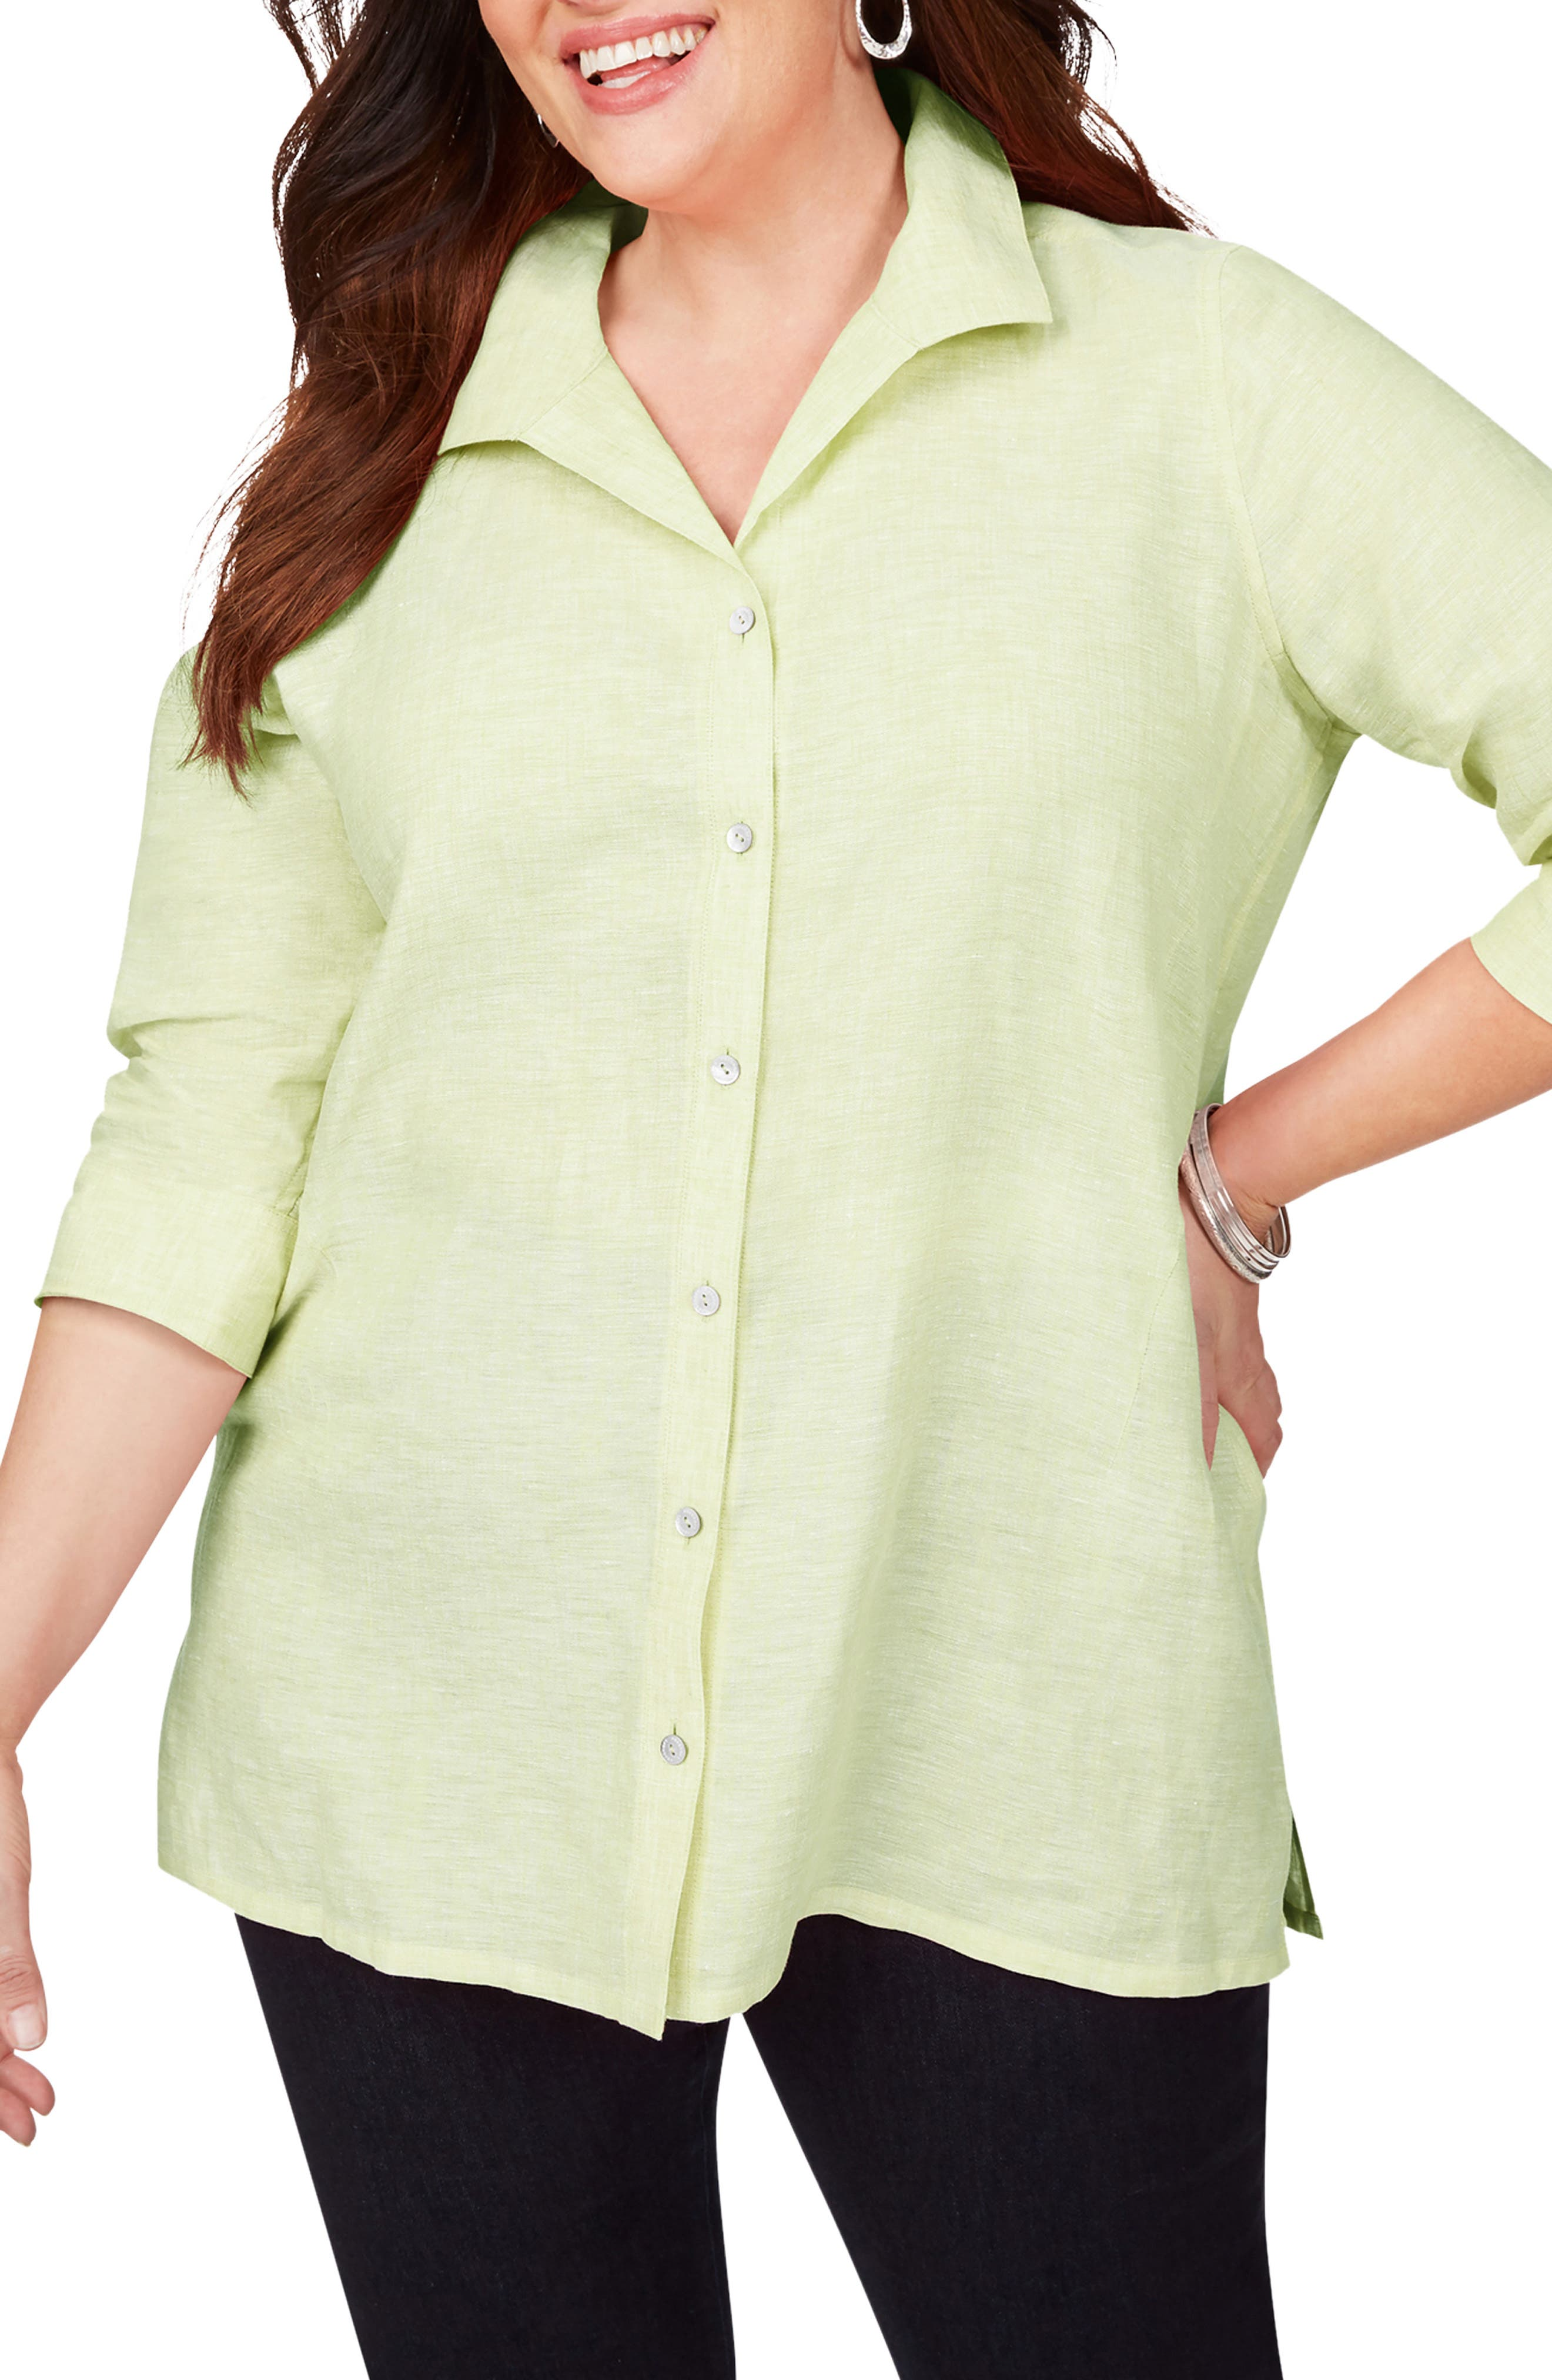 Stirling Woven Linen Top